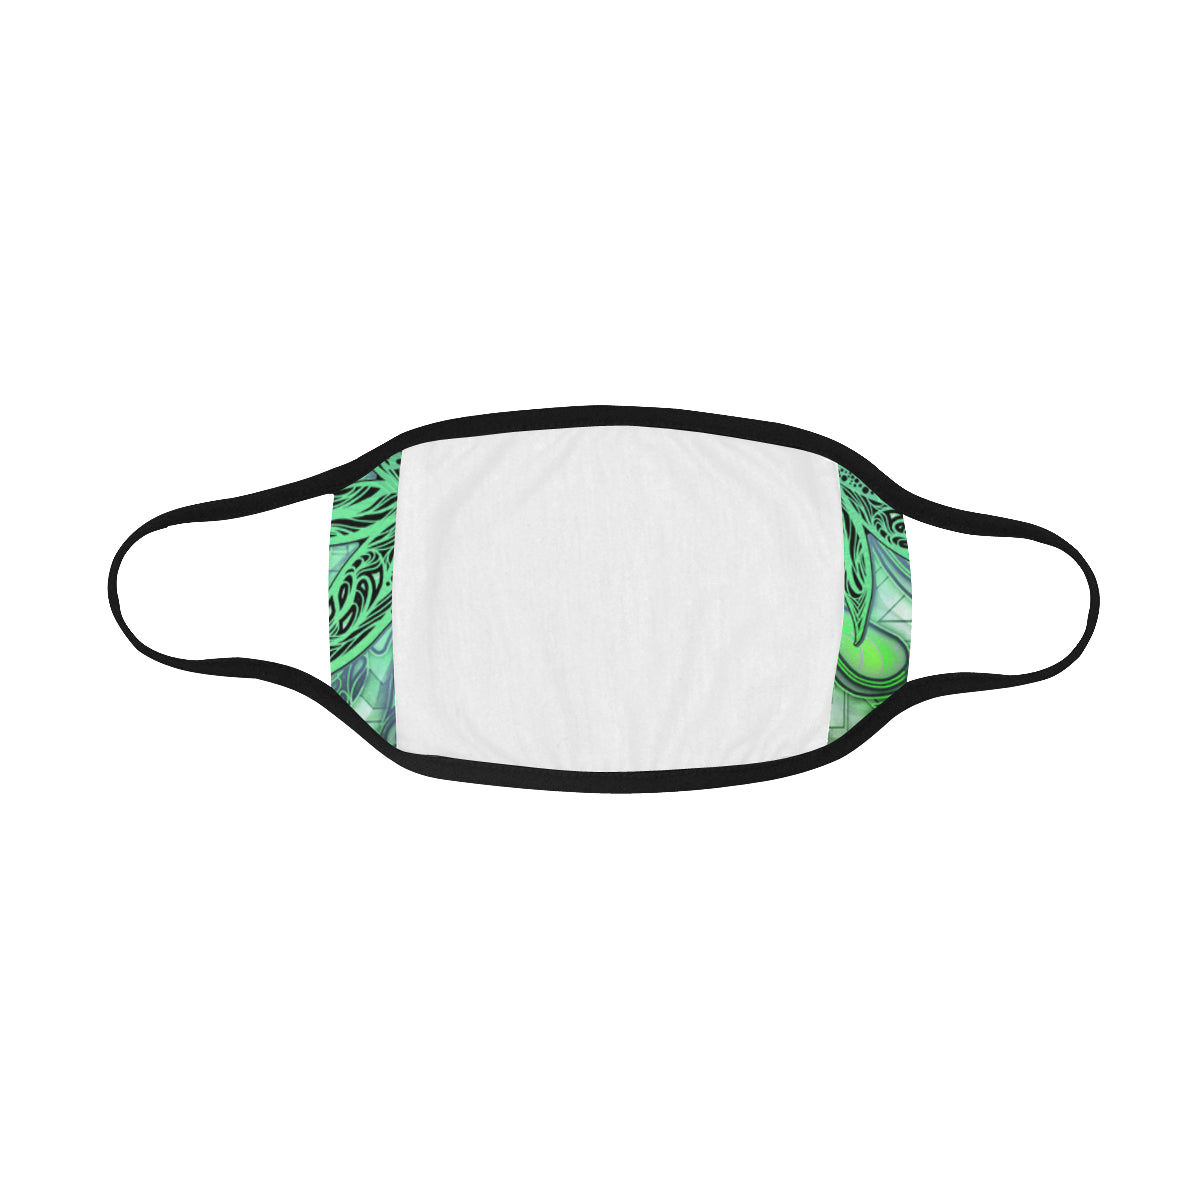 Dank Bud Green Mouth Mask